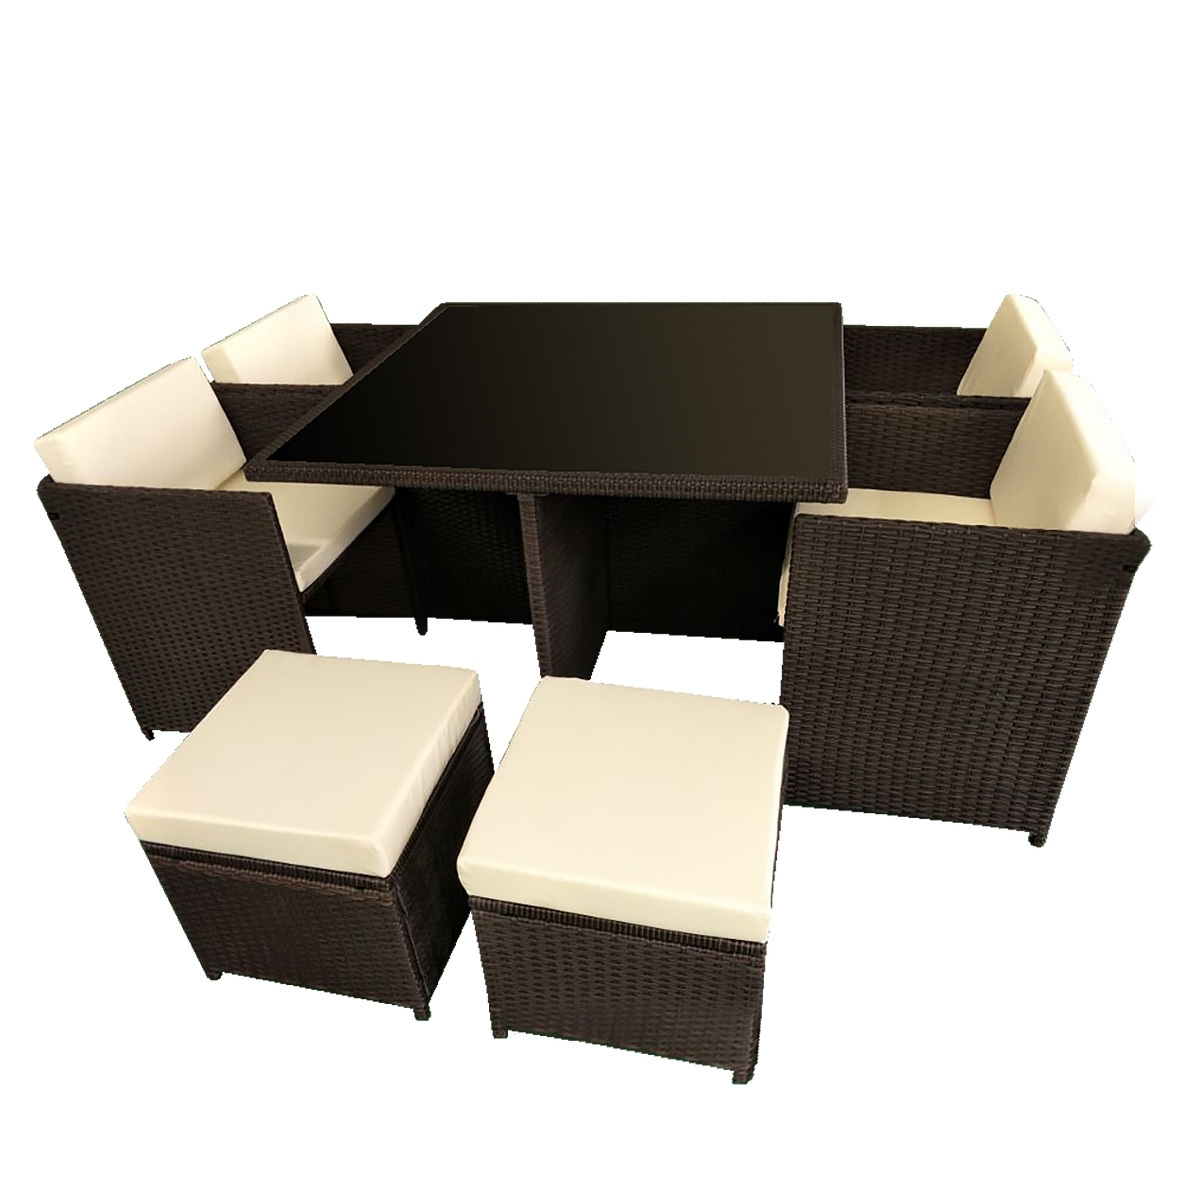 Widely Used 8 Seater Cube Outdoor Dining Table & Seat Set (View 25 of 25)